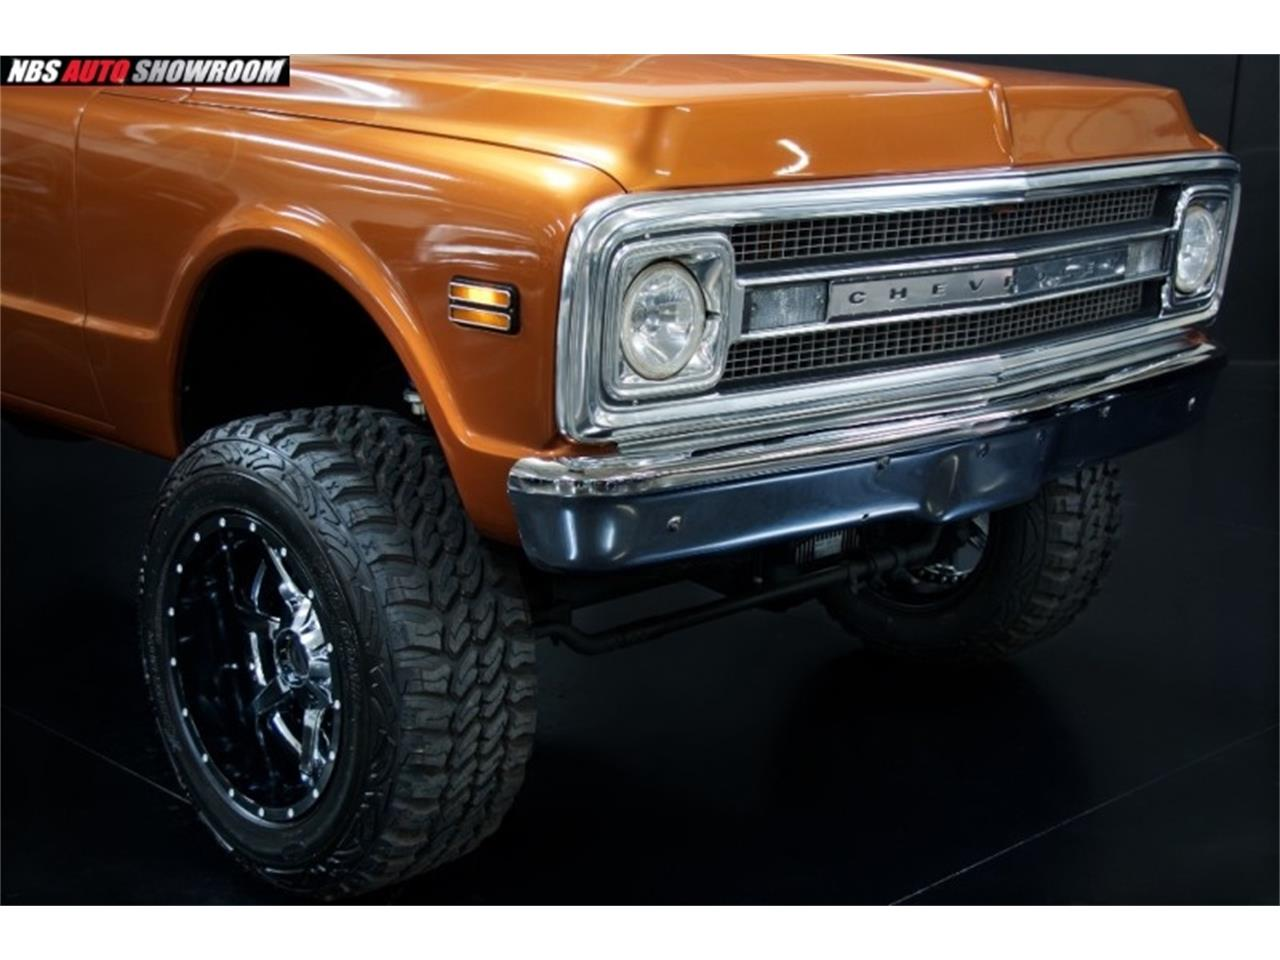 Large Picture of 1970 Chevrolet Blazer - $55,250.00 Offered by NBS Auto Showroom - PR1D